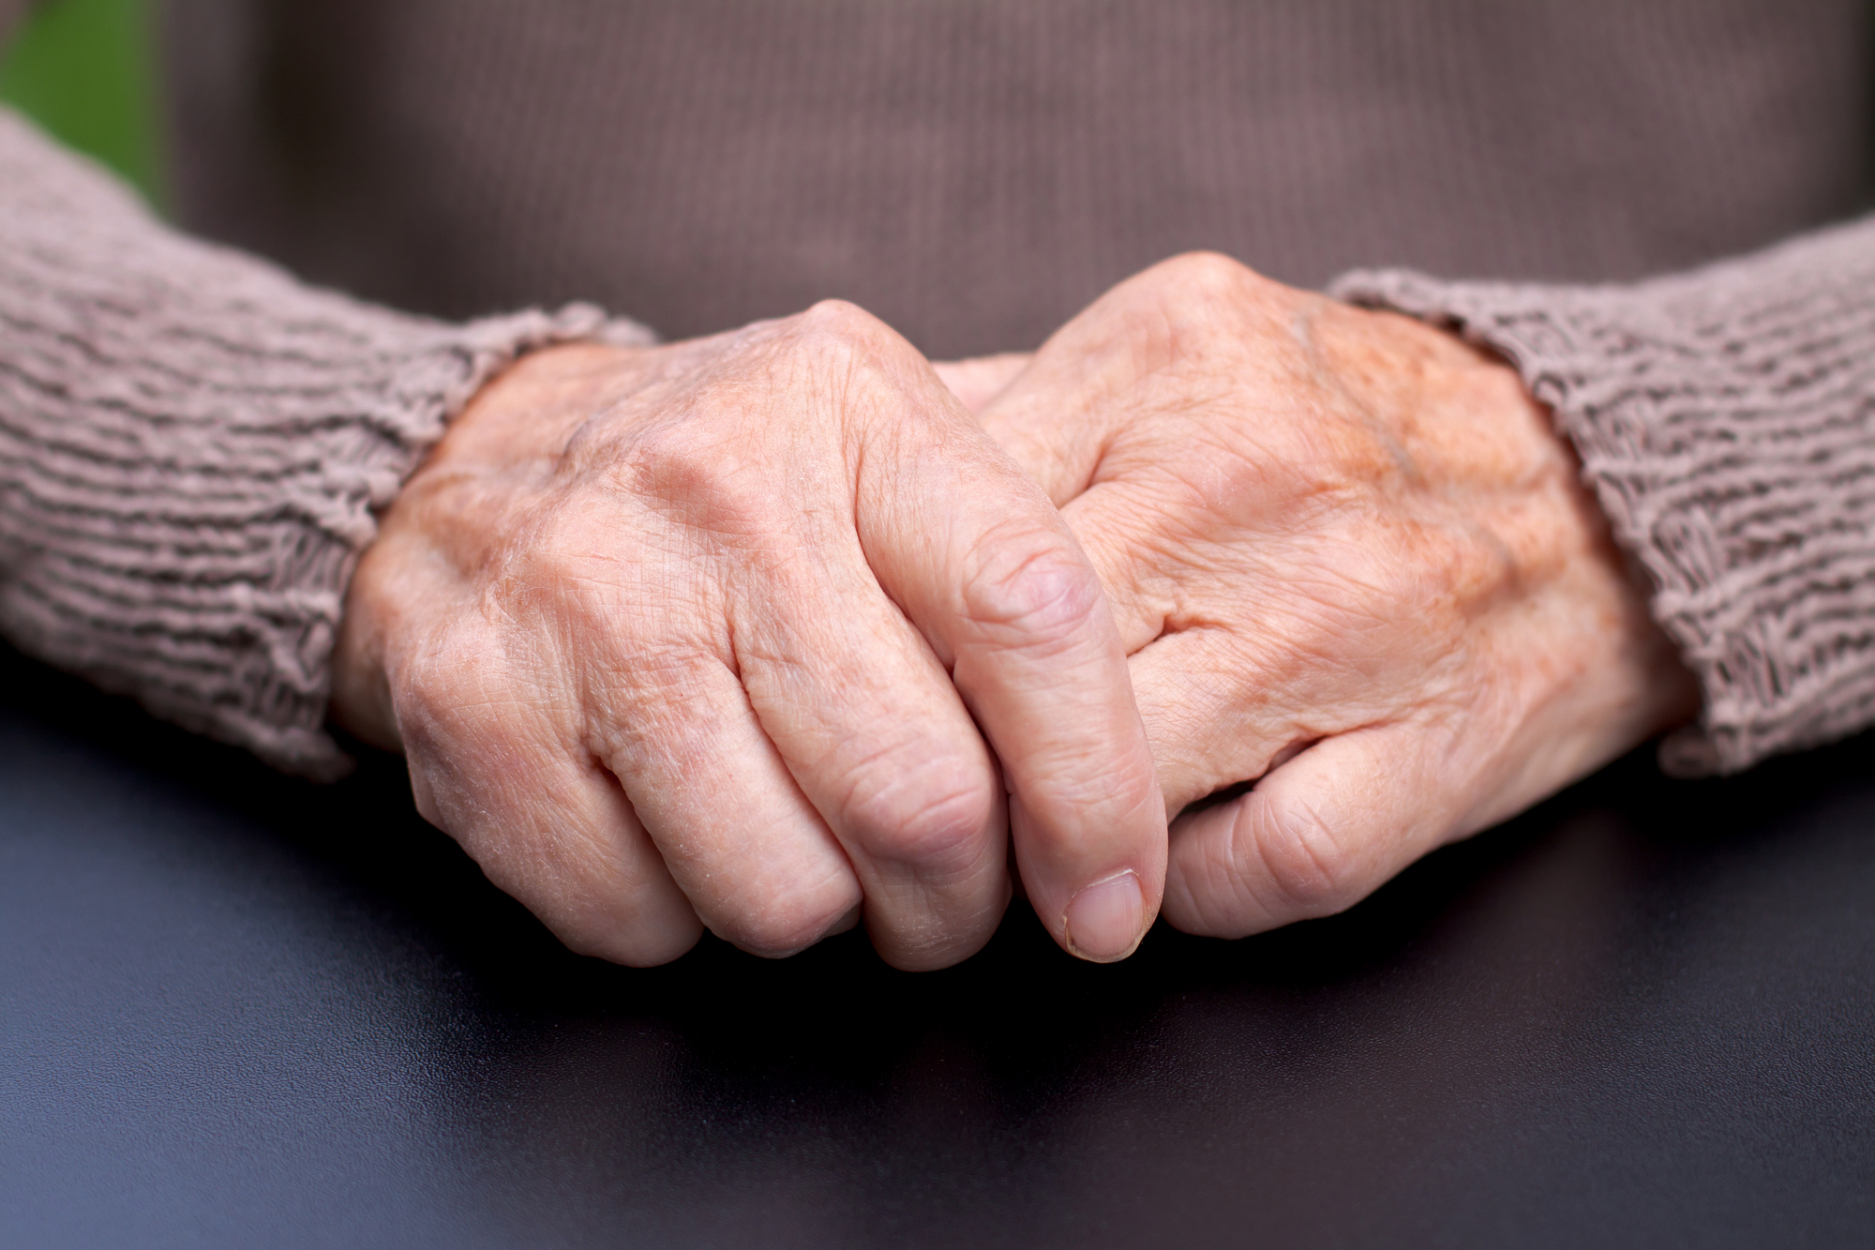 Clasped, elderly hands that look like they may have joint pain.